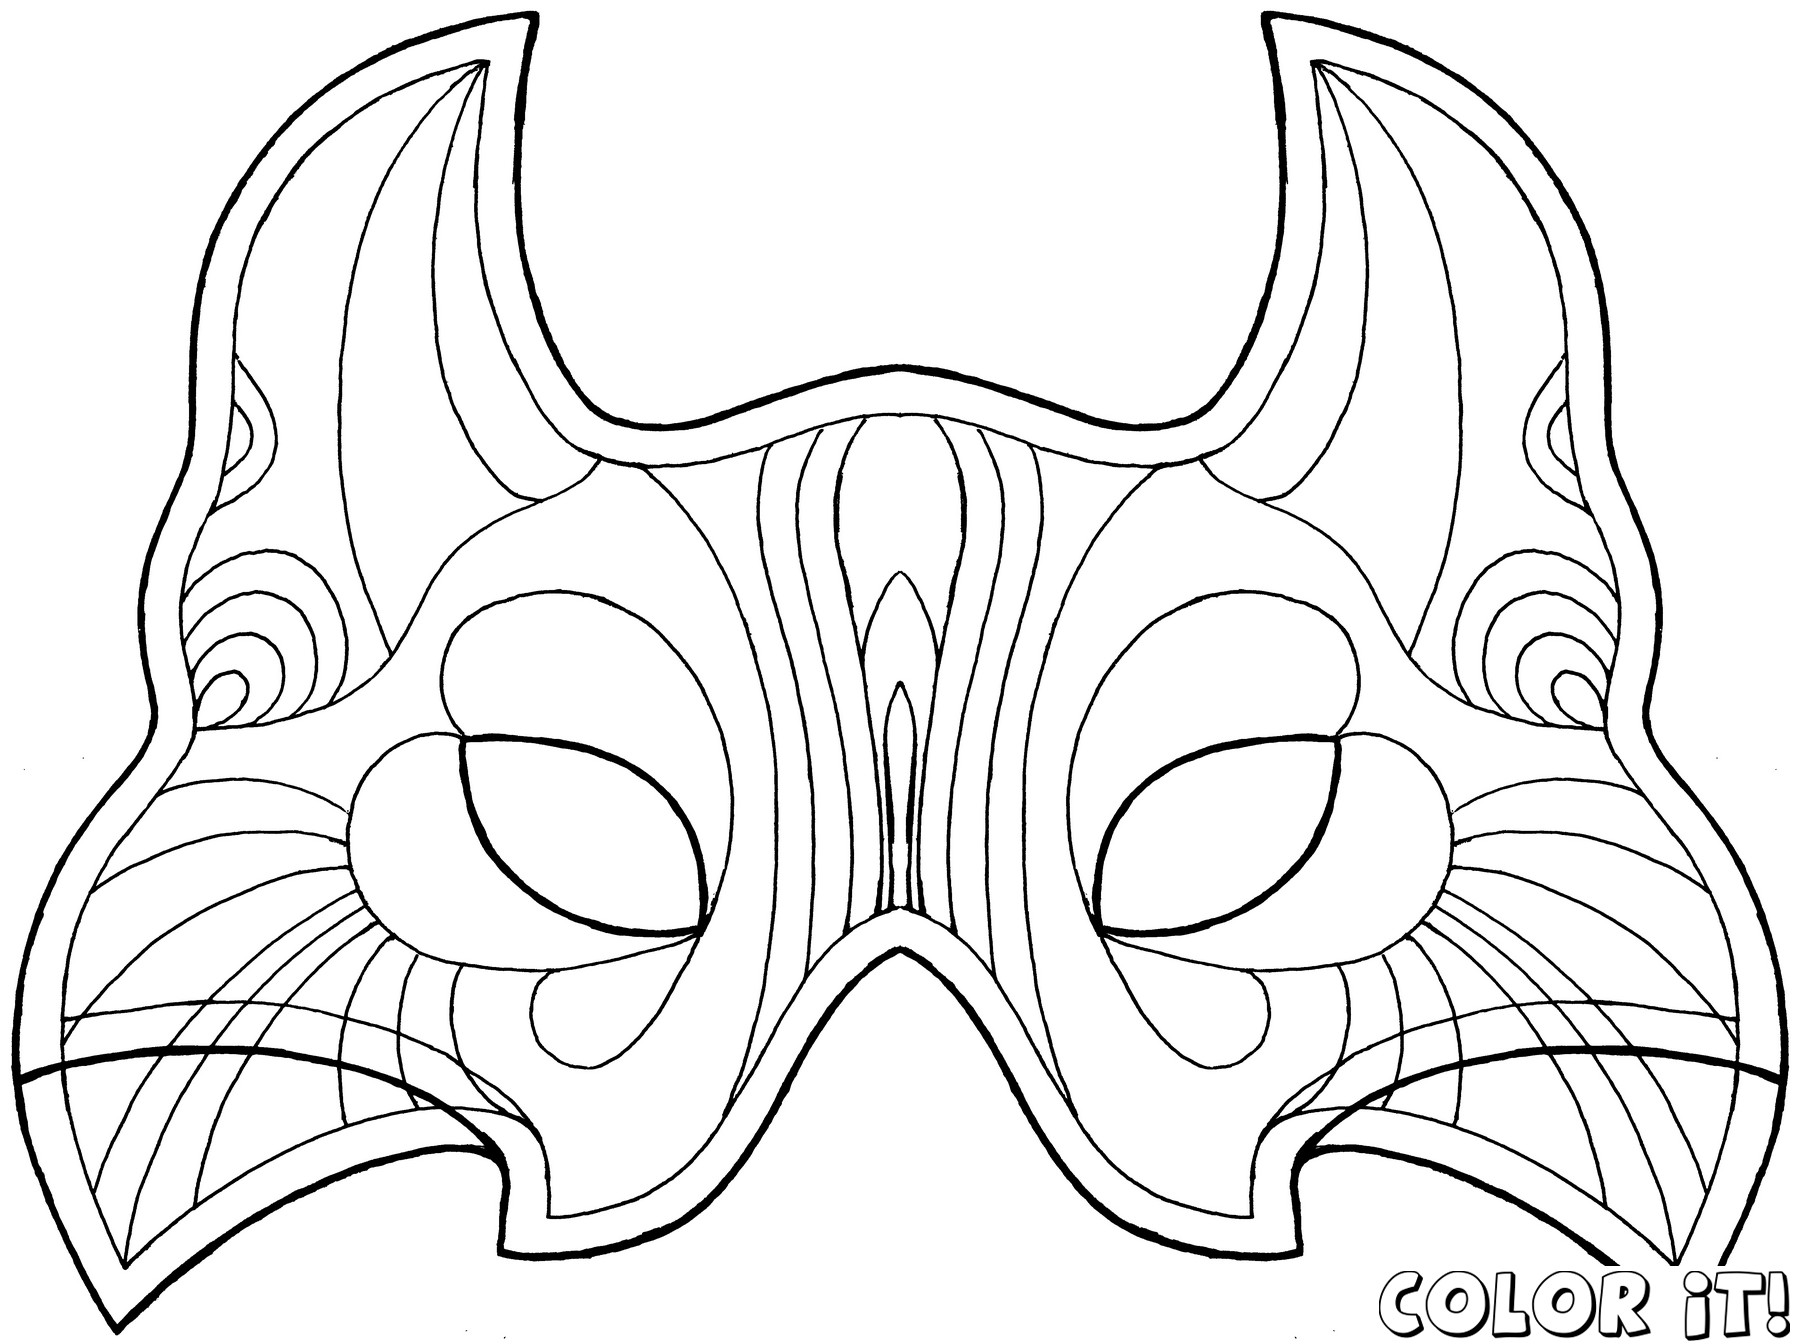 Mask coloring #20, Download drawings